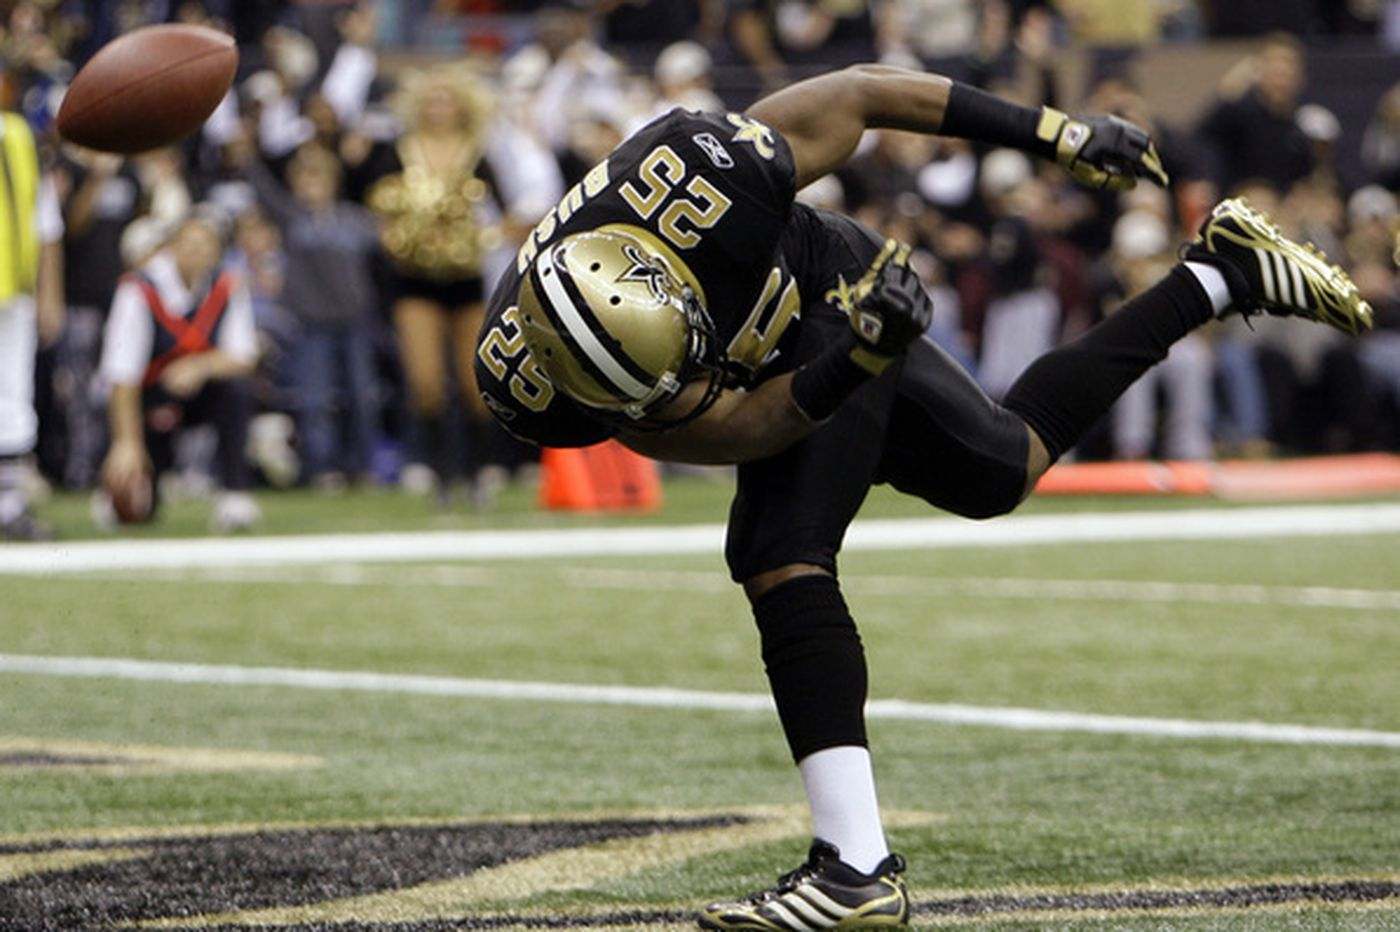 Saints rush, throw past Falcons